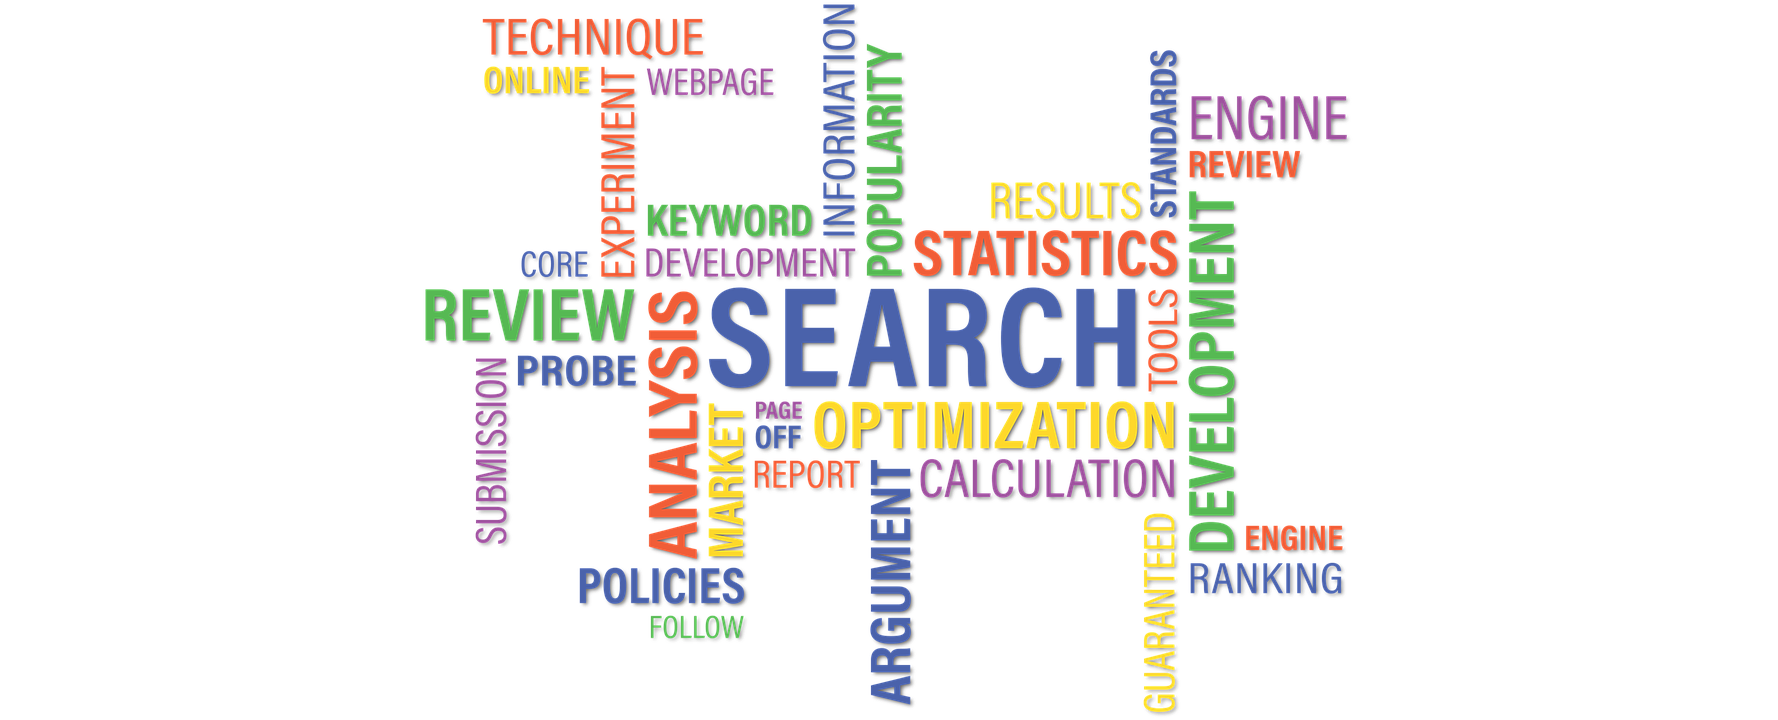 Need Keyword Ideas? Keyword Planning and Keyword Research Tips for Endless Idea Generation